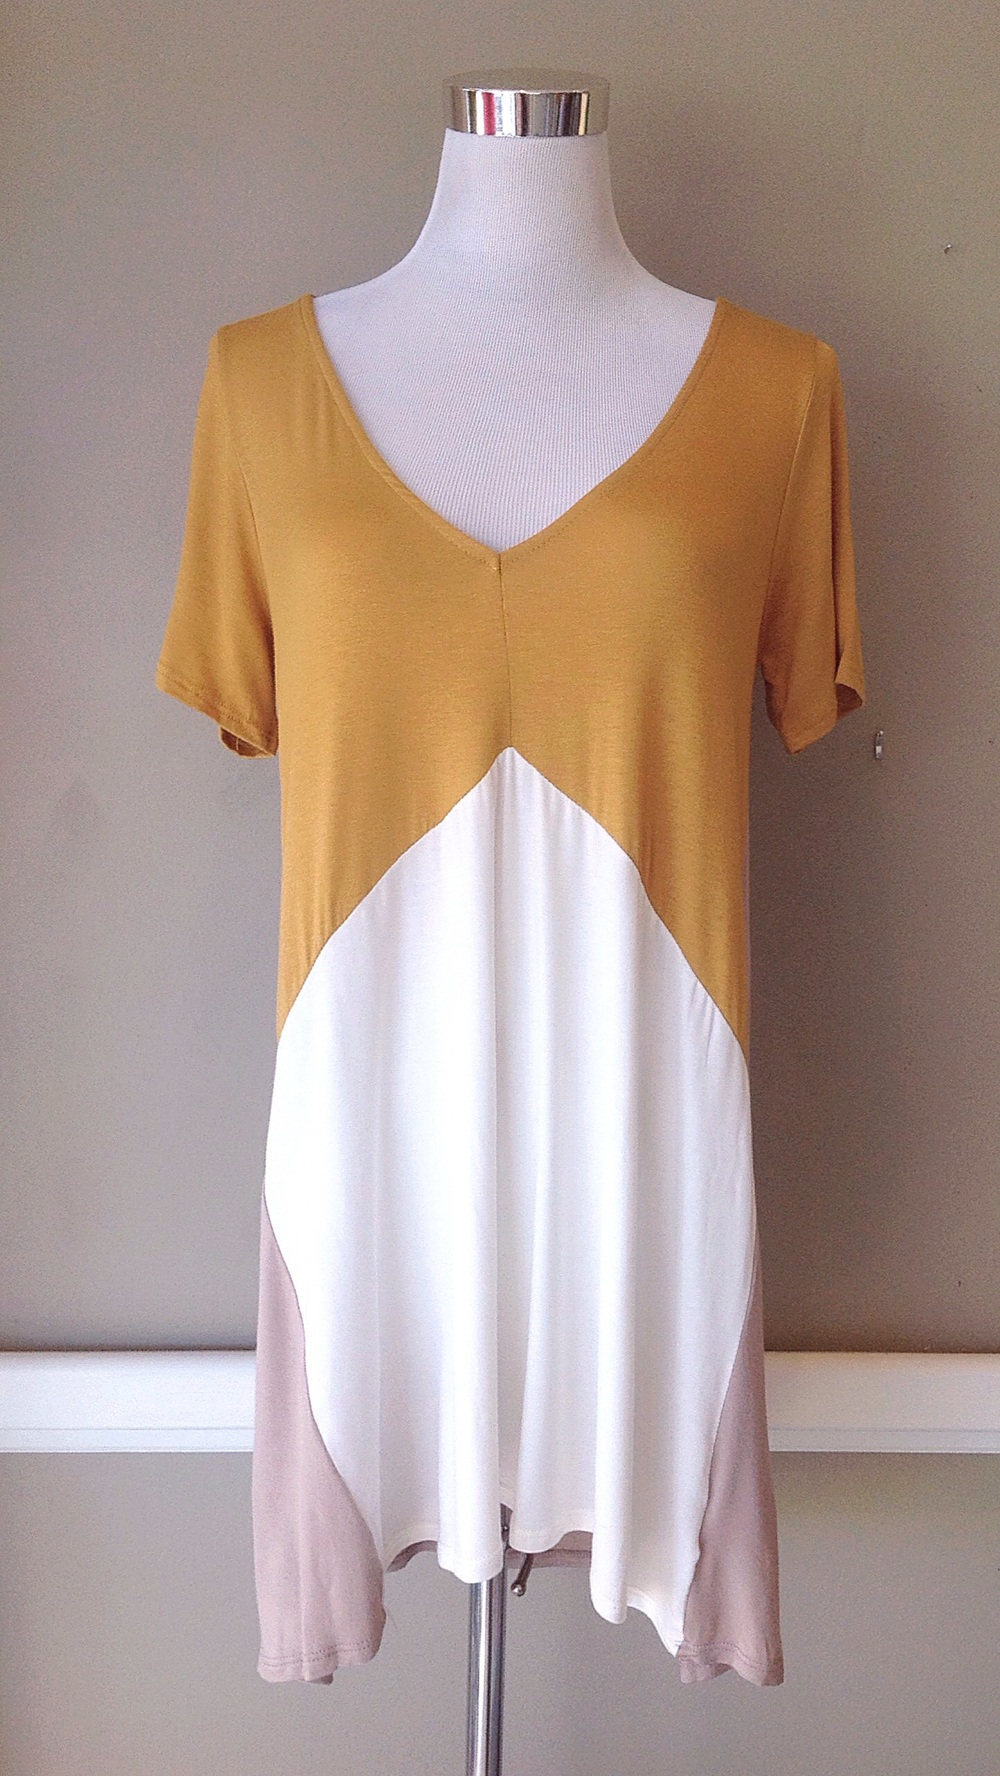 Colorblock knit tunic dress in mustard/ivory/taupe, $34